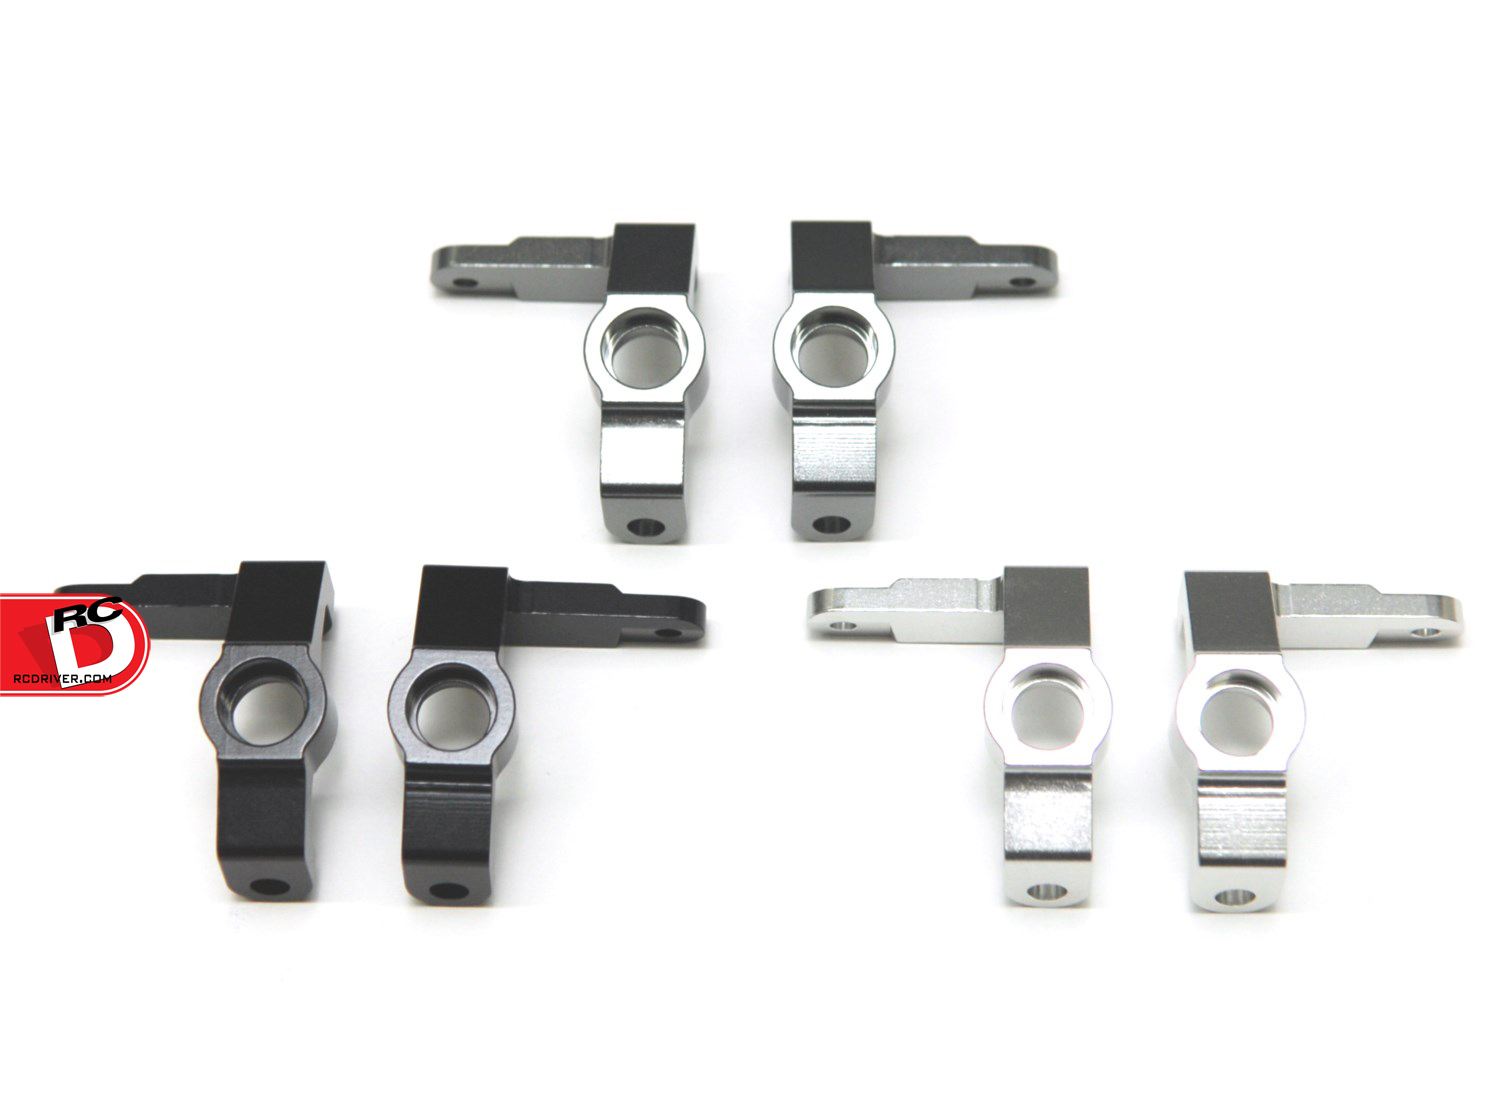 CNC Machined Aluminum Front Steering Knuckles for Vaterra Ascender/Bronco Scale Trucks